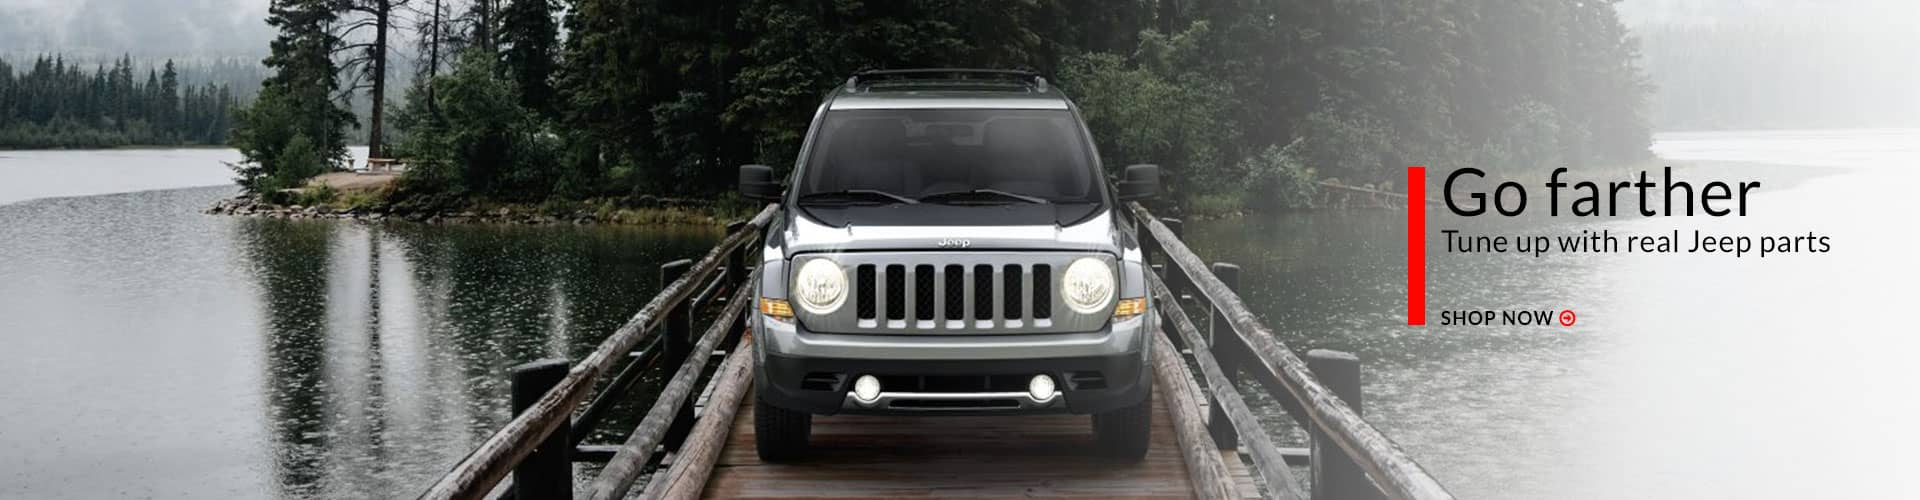 Shop Jeep Parts & Accessories